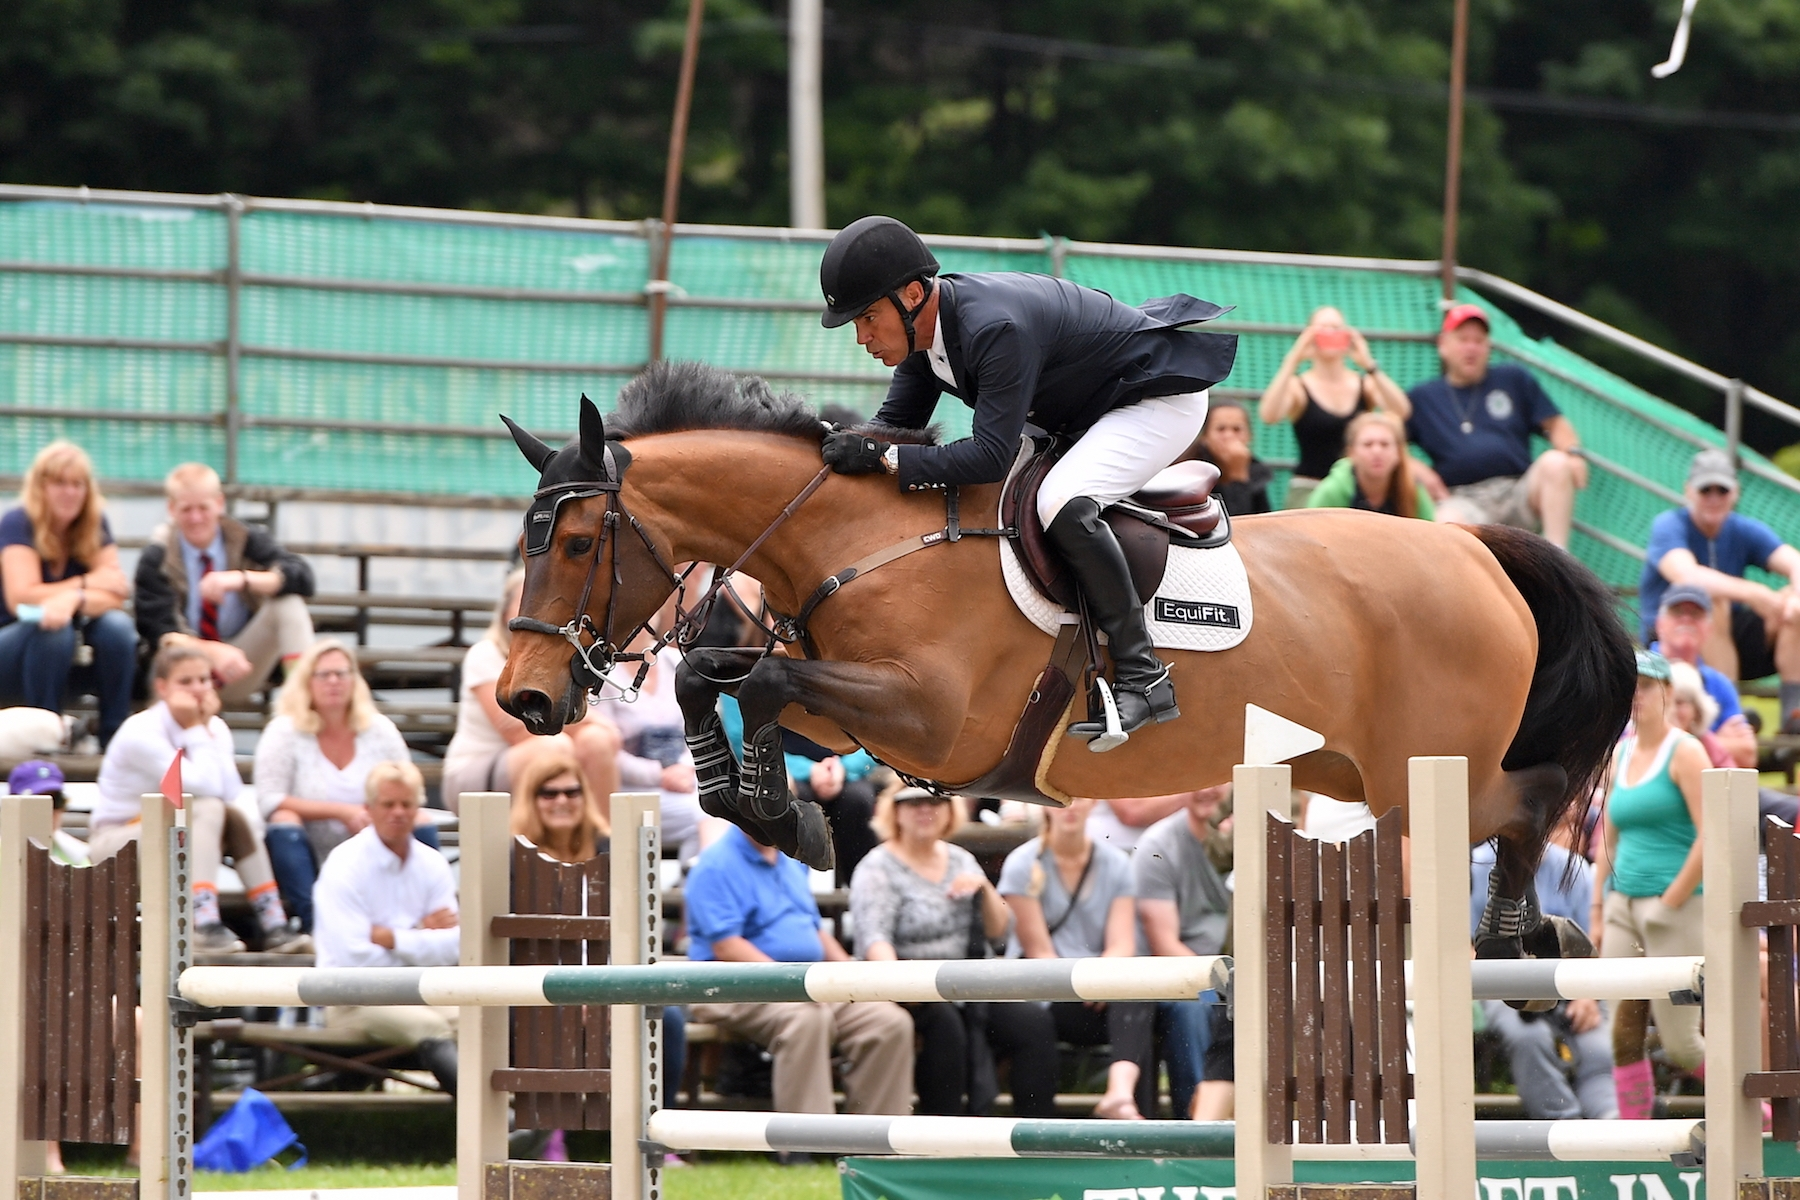 Jimmy Torano won the $30,000 Manchester & The Mountains Grand Prix, presented by Purina Horse Feed, riding Dutch Lady on Saturday, August 5, at the Vermont Summer Festival in East Dorset, VT.<br><b>Photo by <a href='http://www.andrewryback.com/' target='_blank'>Andrew Ryback Photography</a></b>